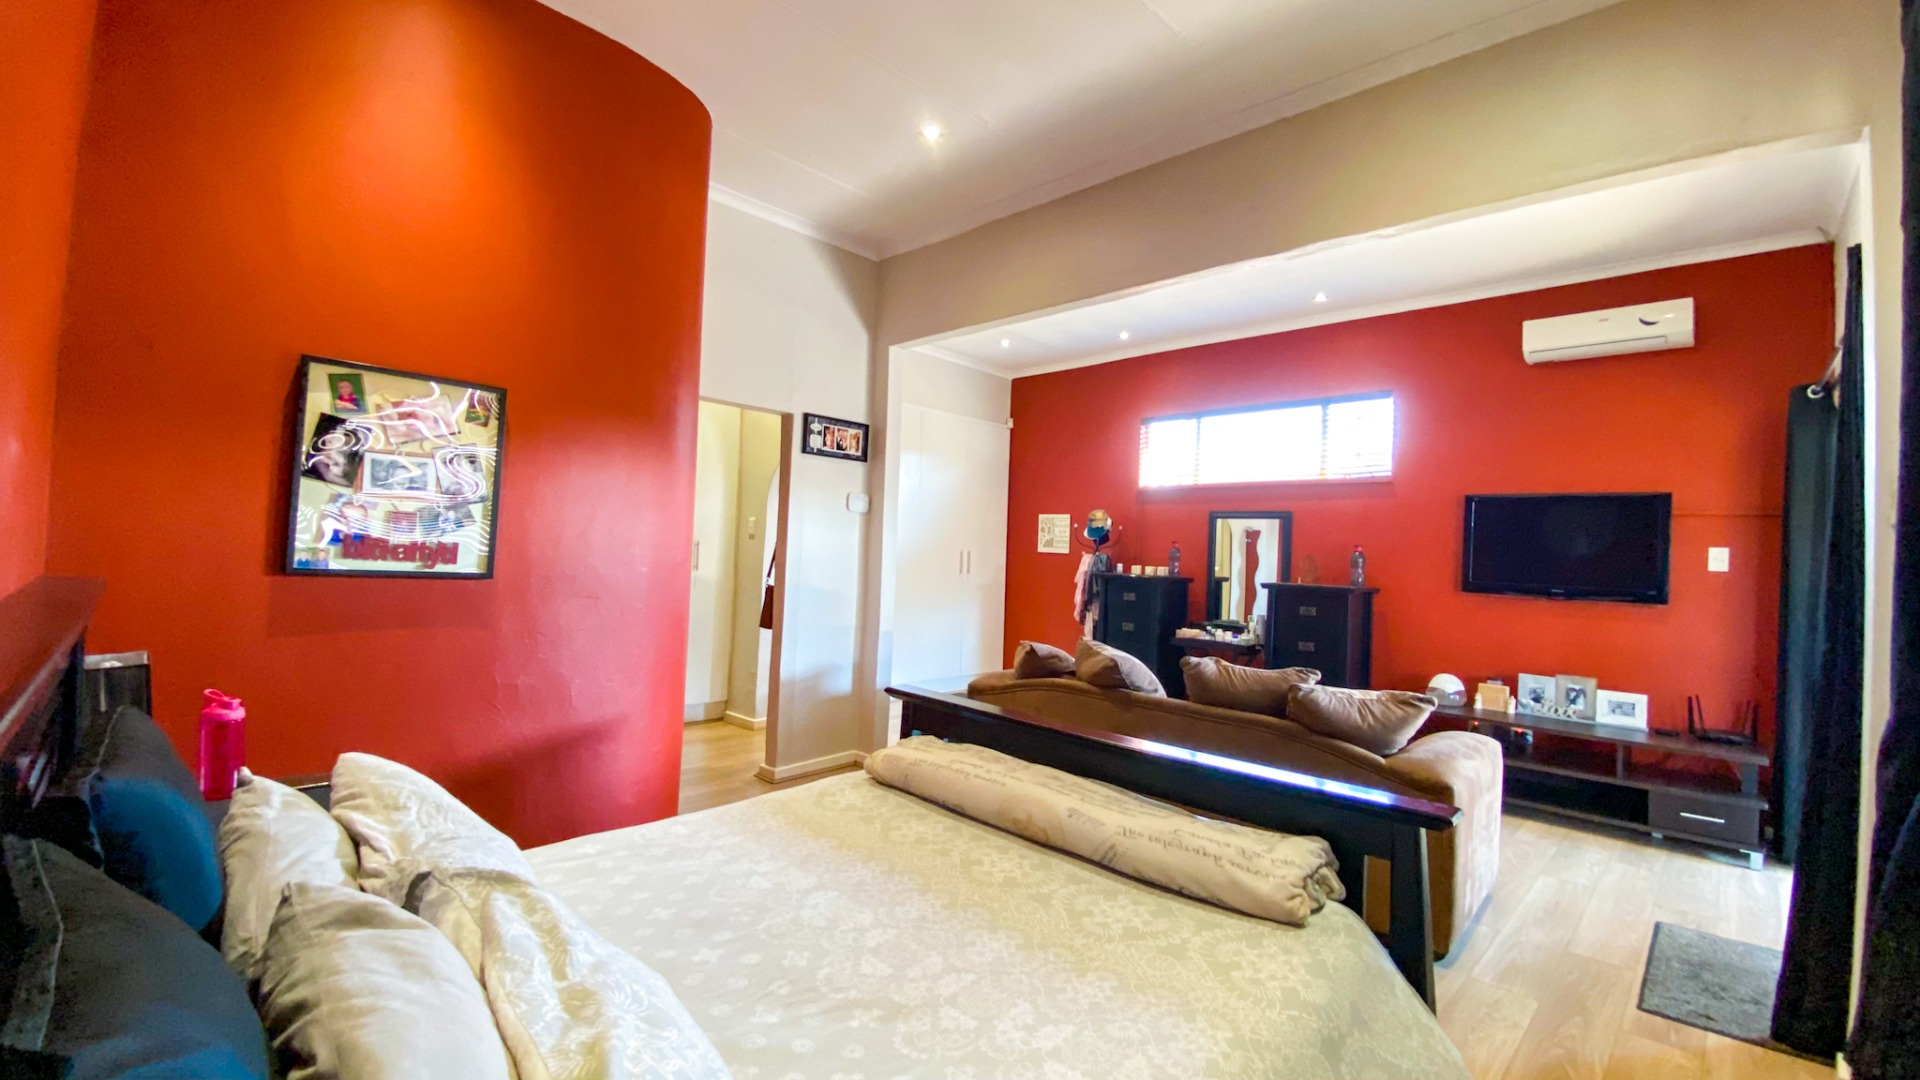 4 Bedroom House For Sale in Edelweiss